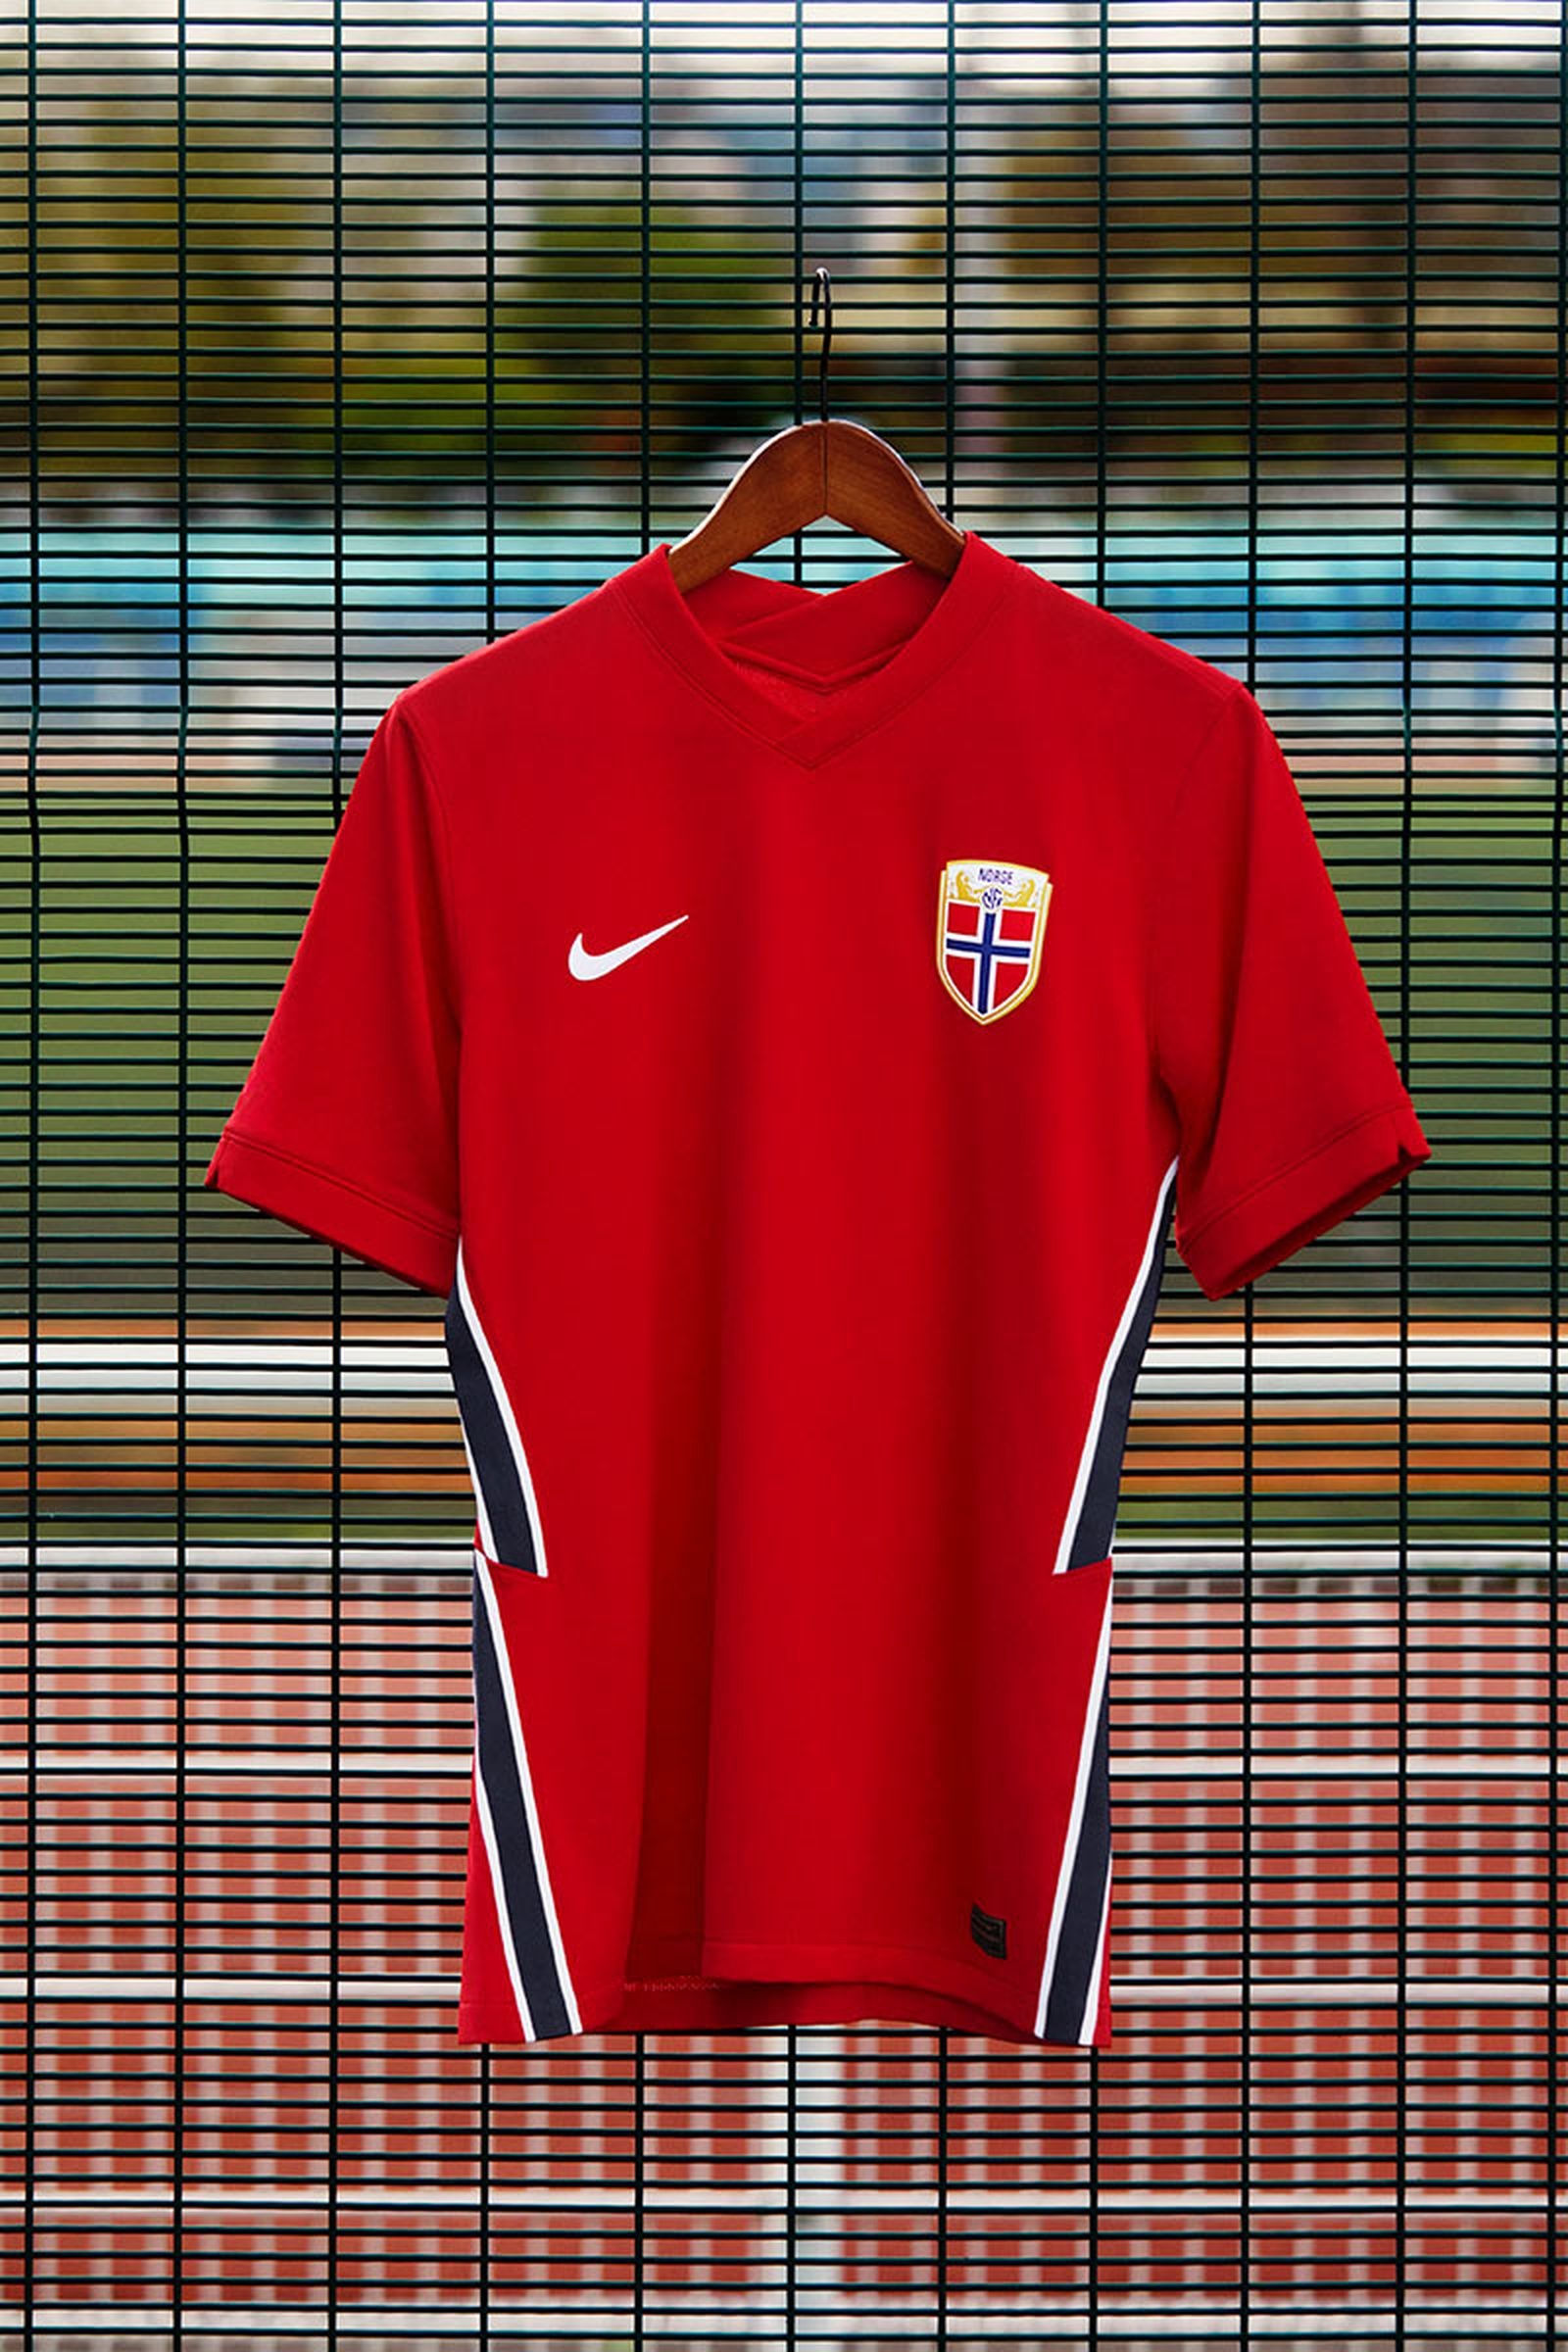 nike-national-team-kits-2020-ranking-17